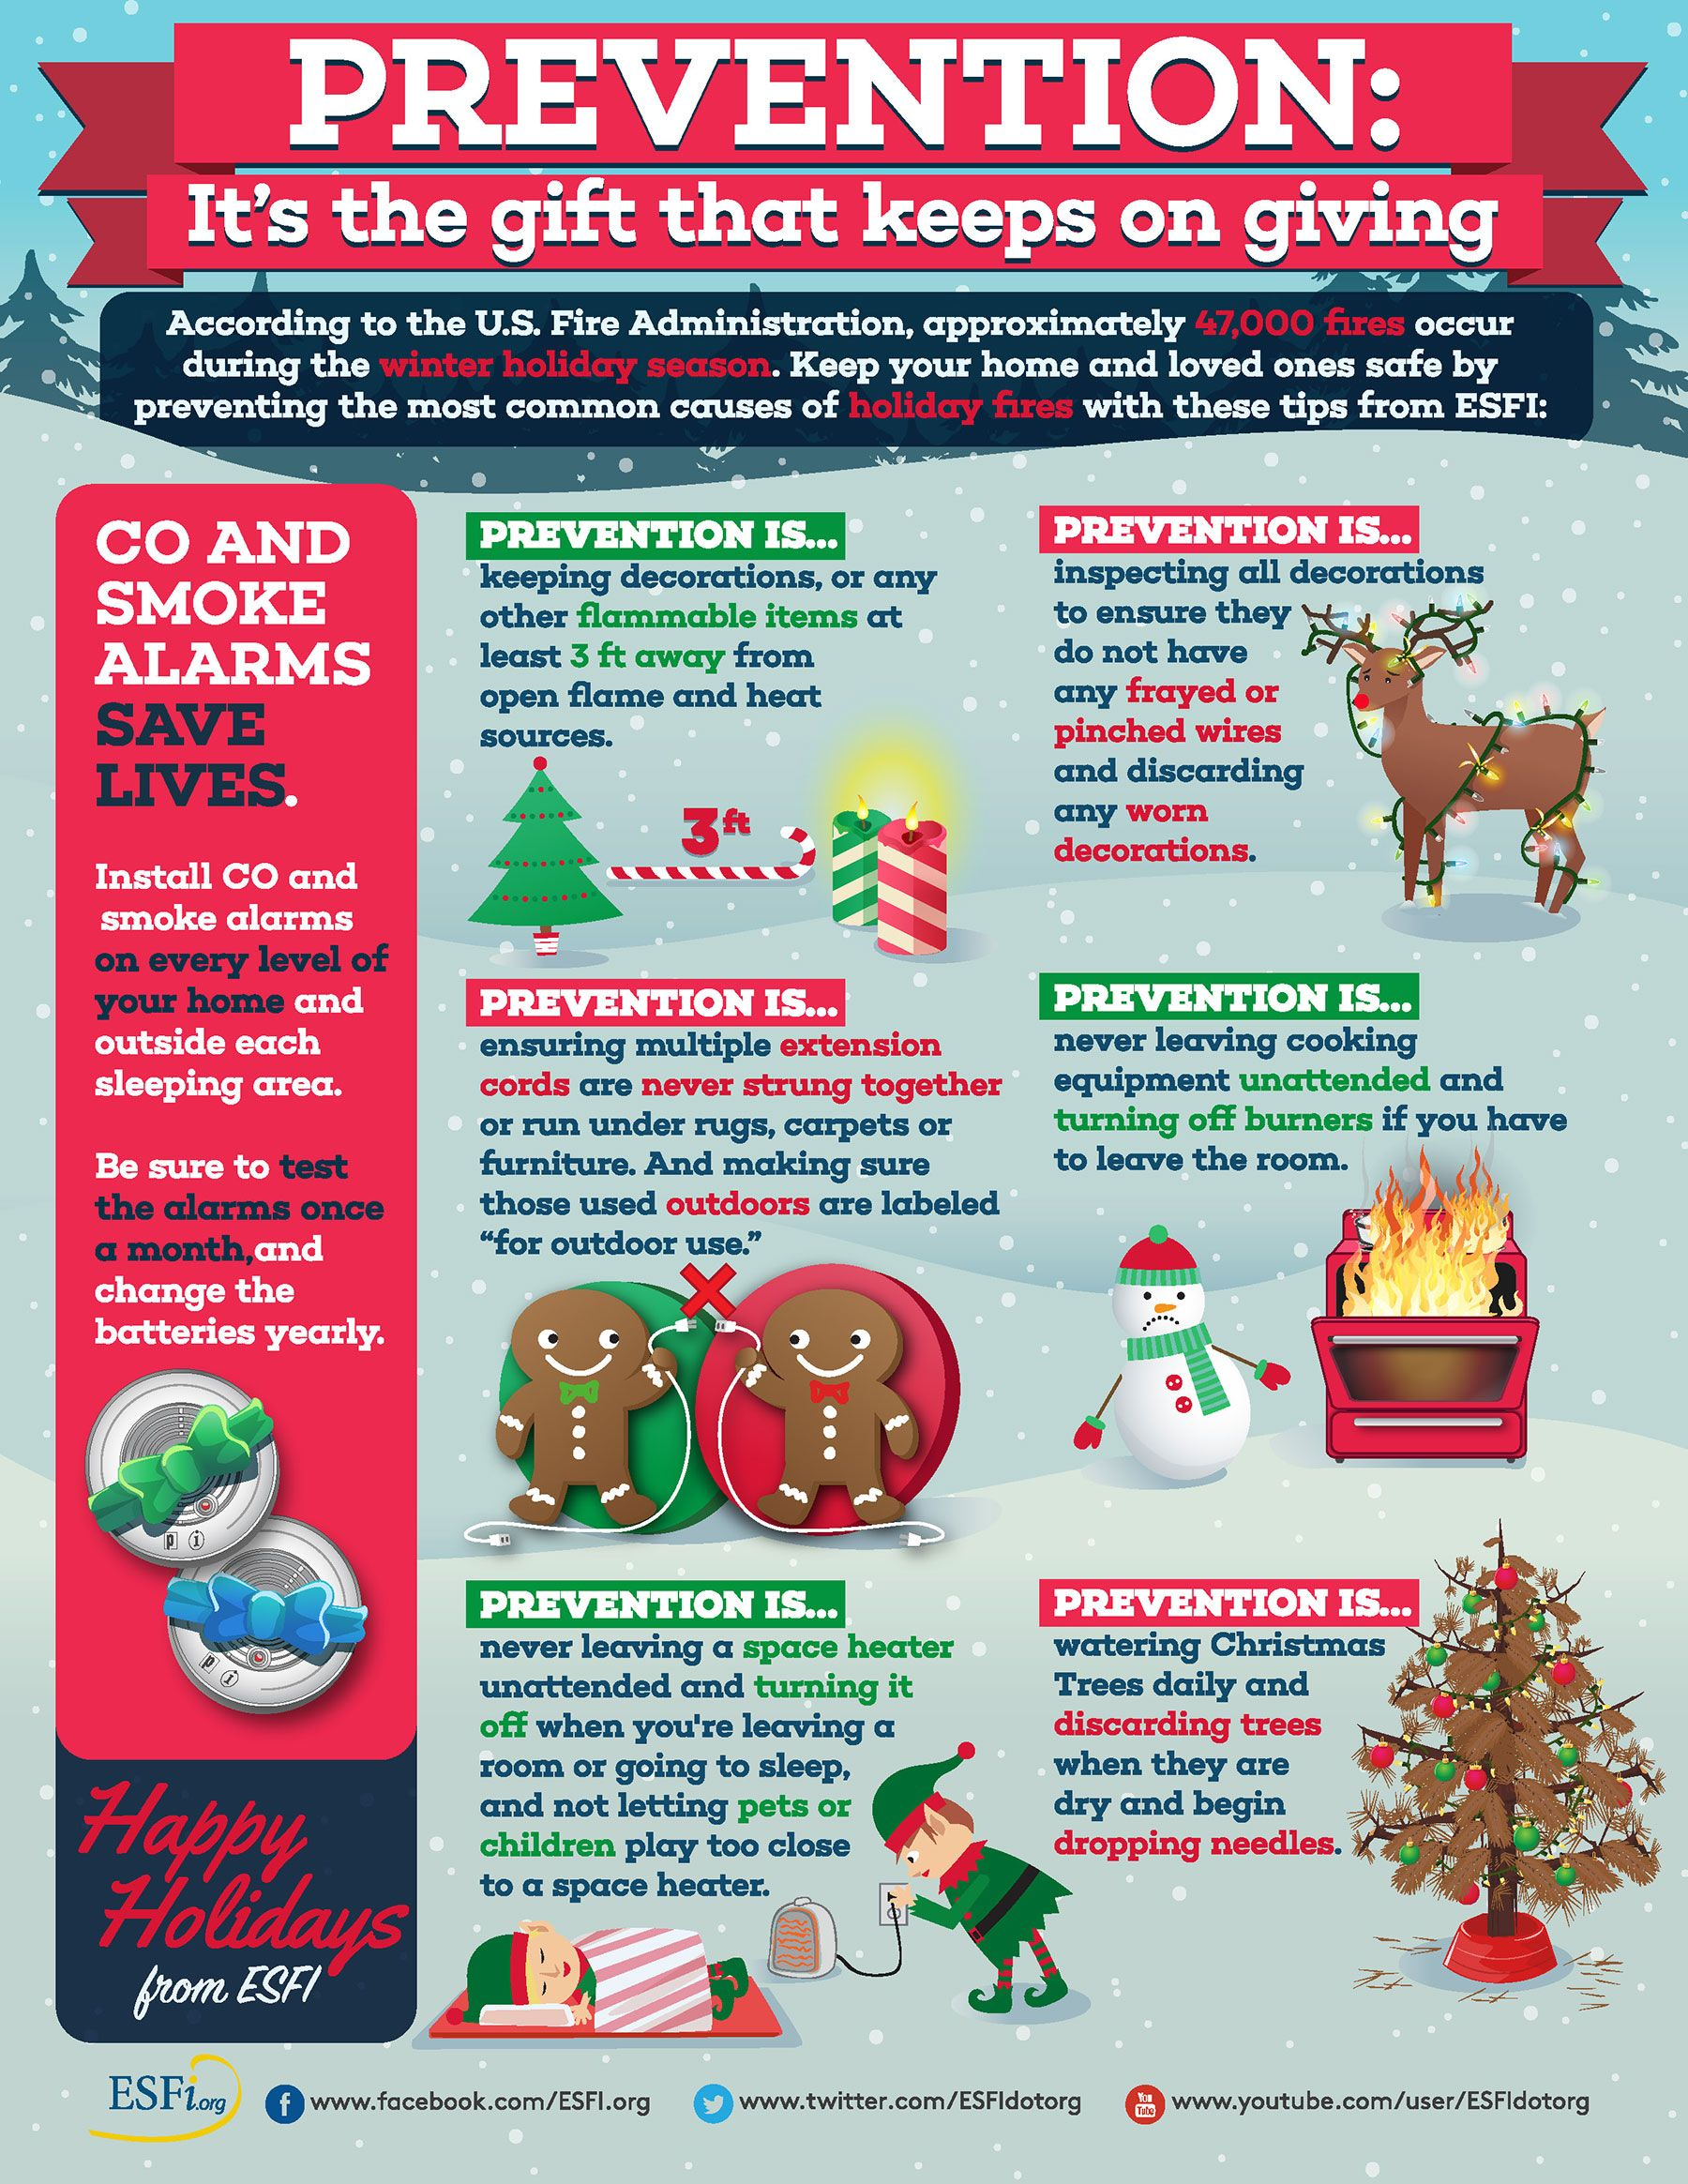 Add Safety To Your Holiday Marketing Mix In December